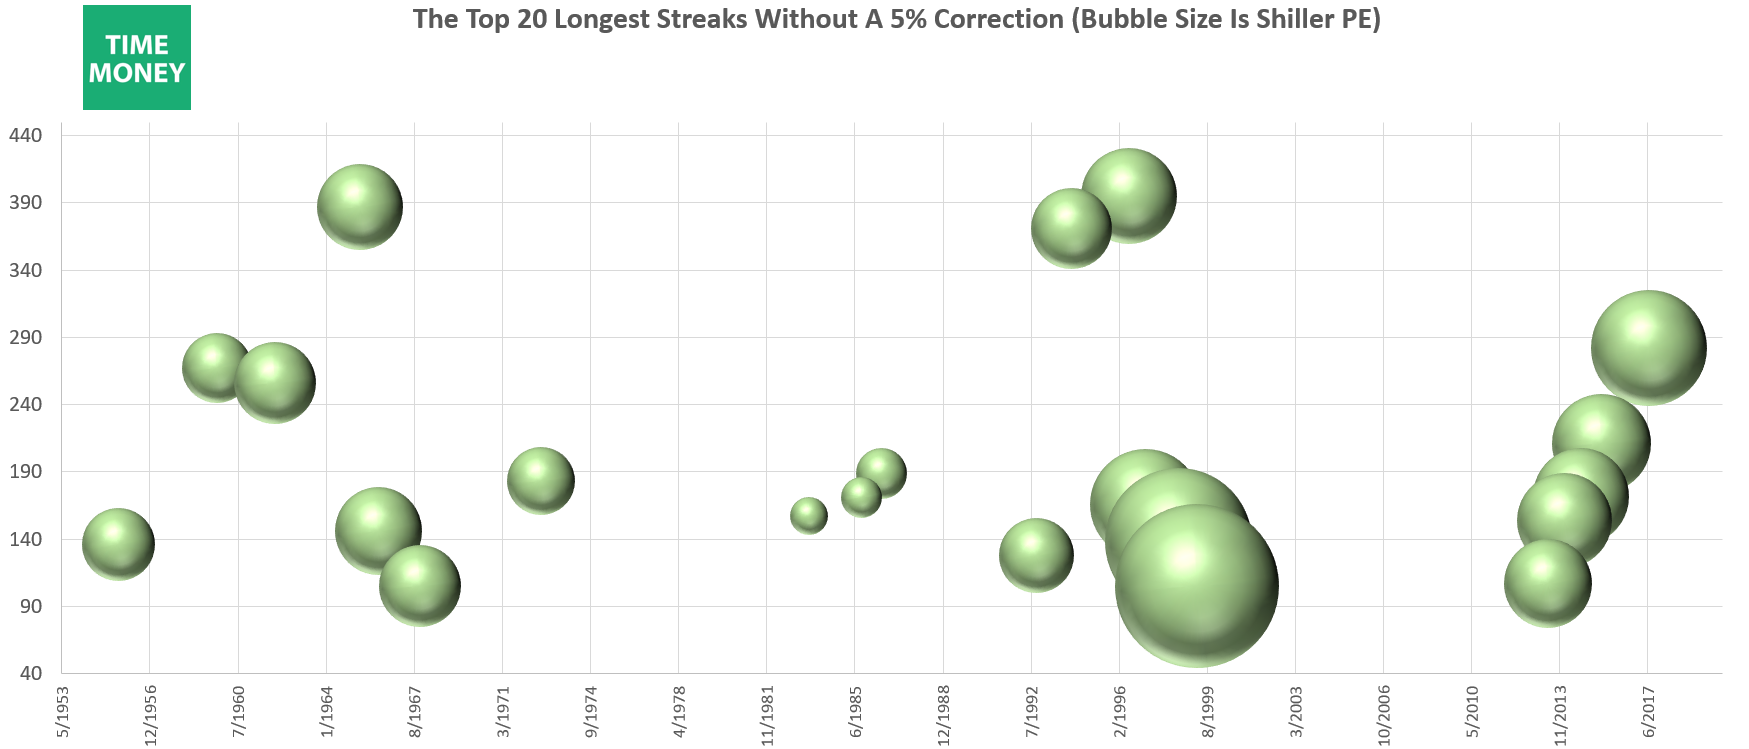 The Valuation Of The Longest Streaks Without A Correction